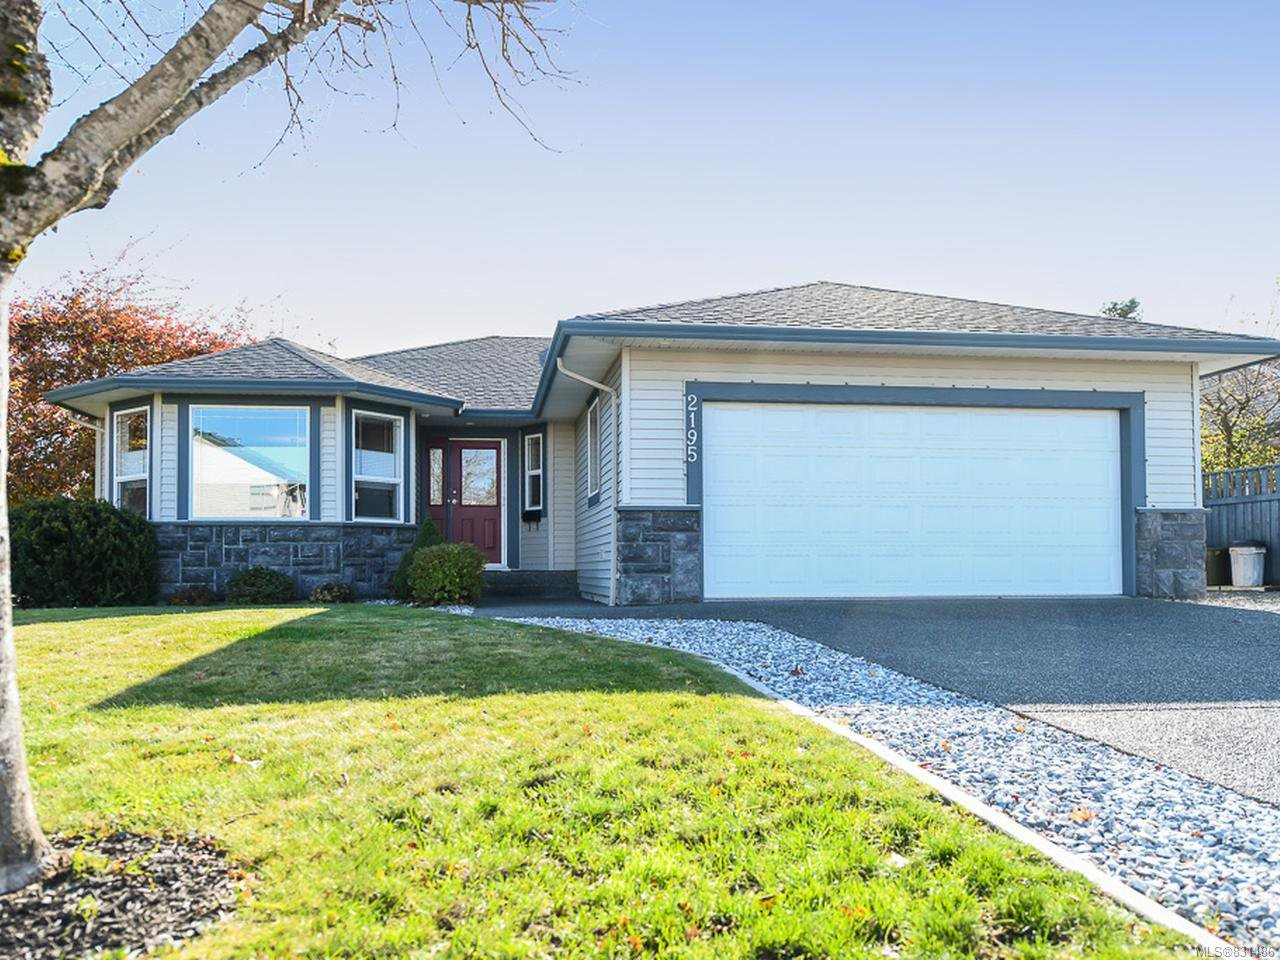 Main Photo: 2195 Hawk Dr in COURTENAY: CV Courtenay East House for sale (Comox Valley)  : MLS®# 831486